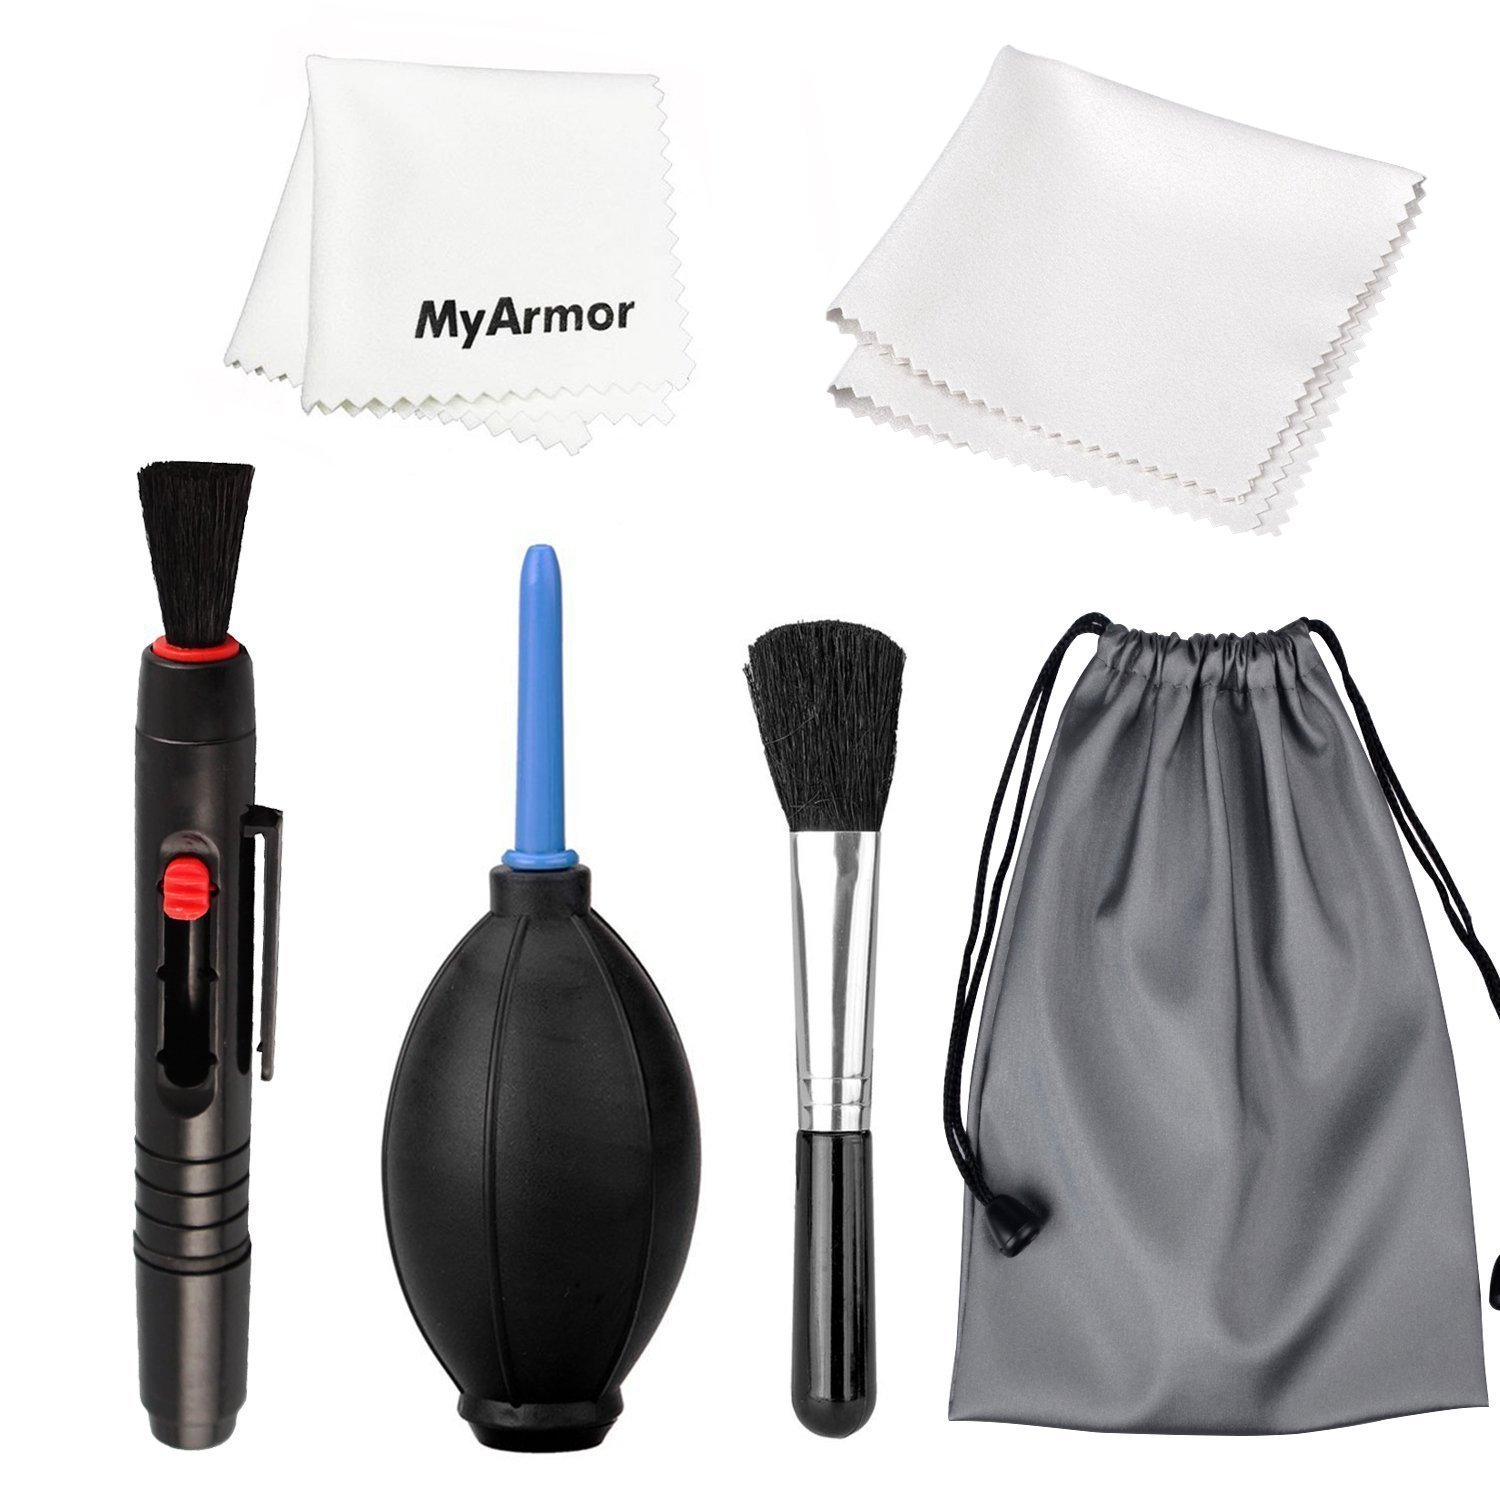 MyArmor Professional Lens Cleaning Kit Set With Pen Cloth Air Blower Brush for Cameras(Canon,Nikon,Pentax,Sony), PC or Phone Screens, Glass ect. product image